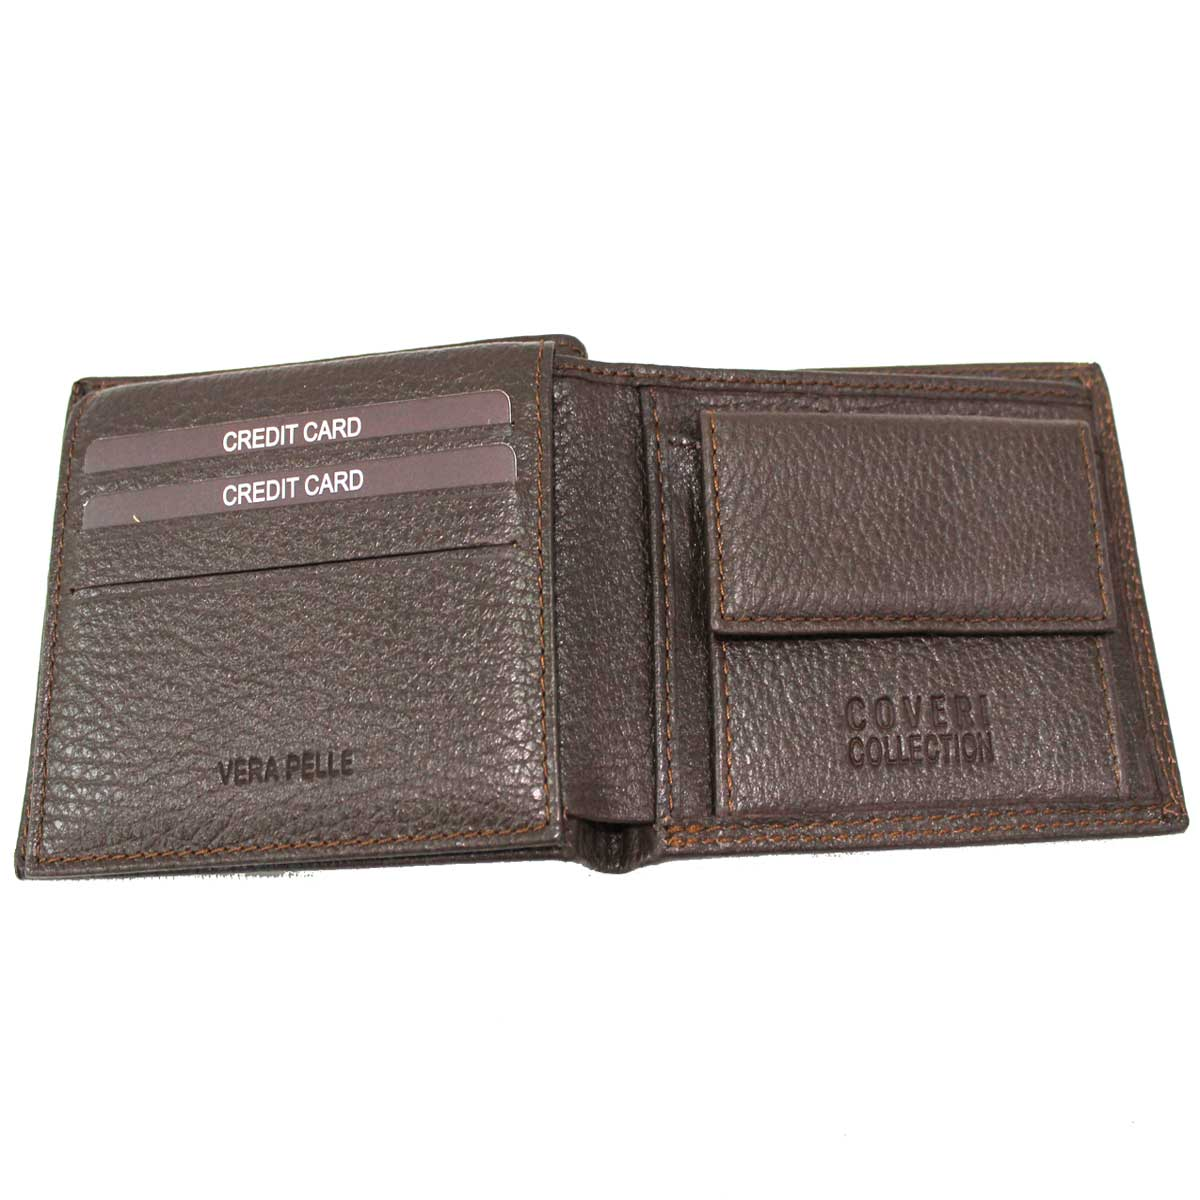 bac7a7d3f2 ... Leather men's wallet small model with coin case Coveri Collection  217-992 brown ...